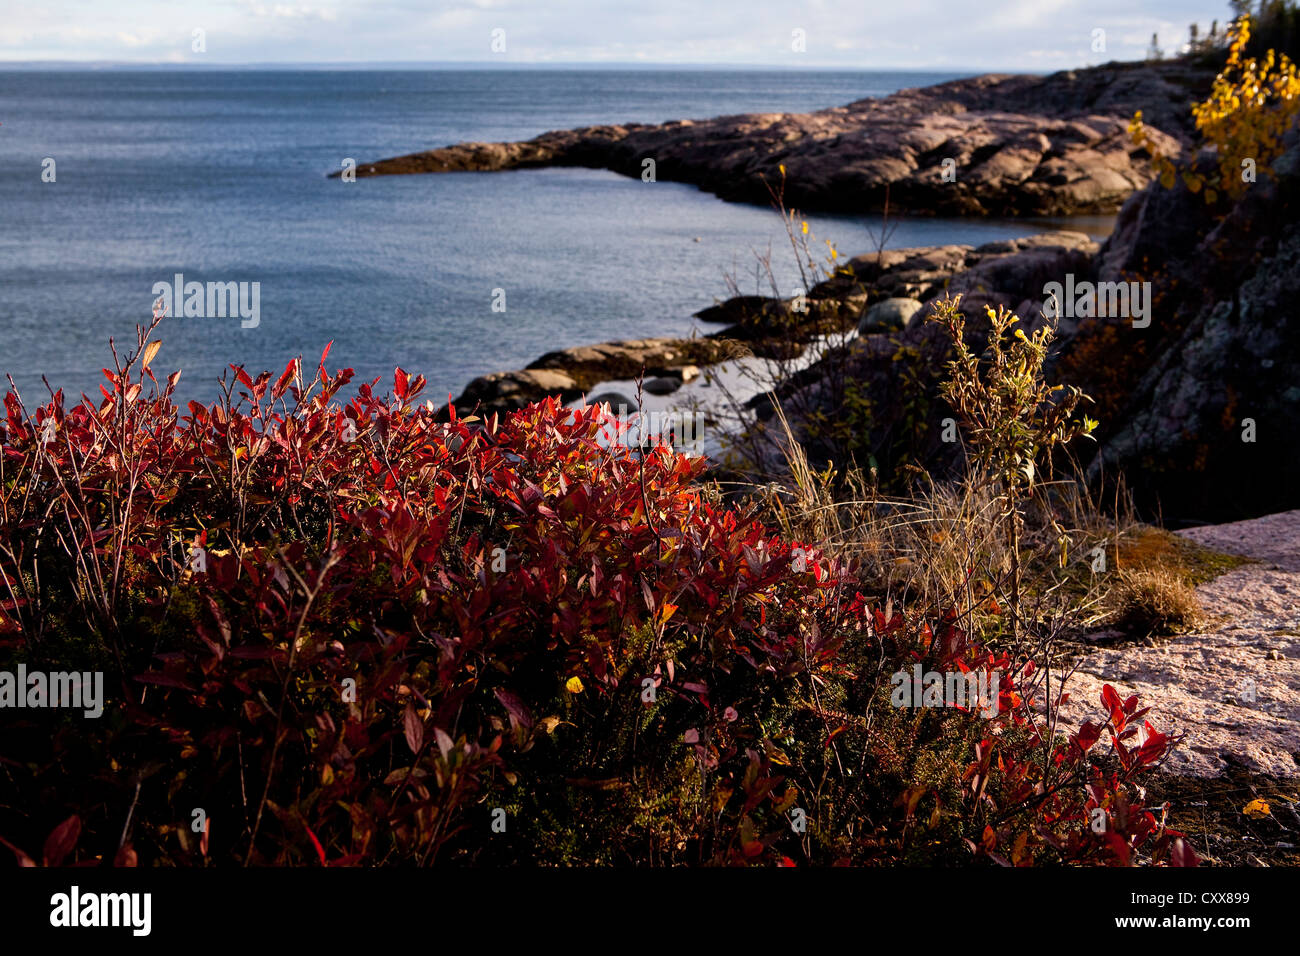 Vaccinium angustifolium are pictured on the coast of the St. Lawrence river in Essipit, - Stock Image